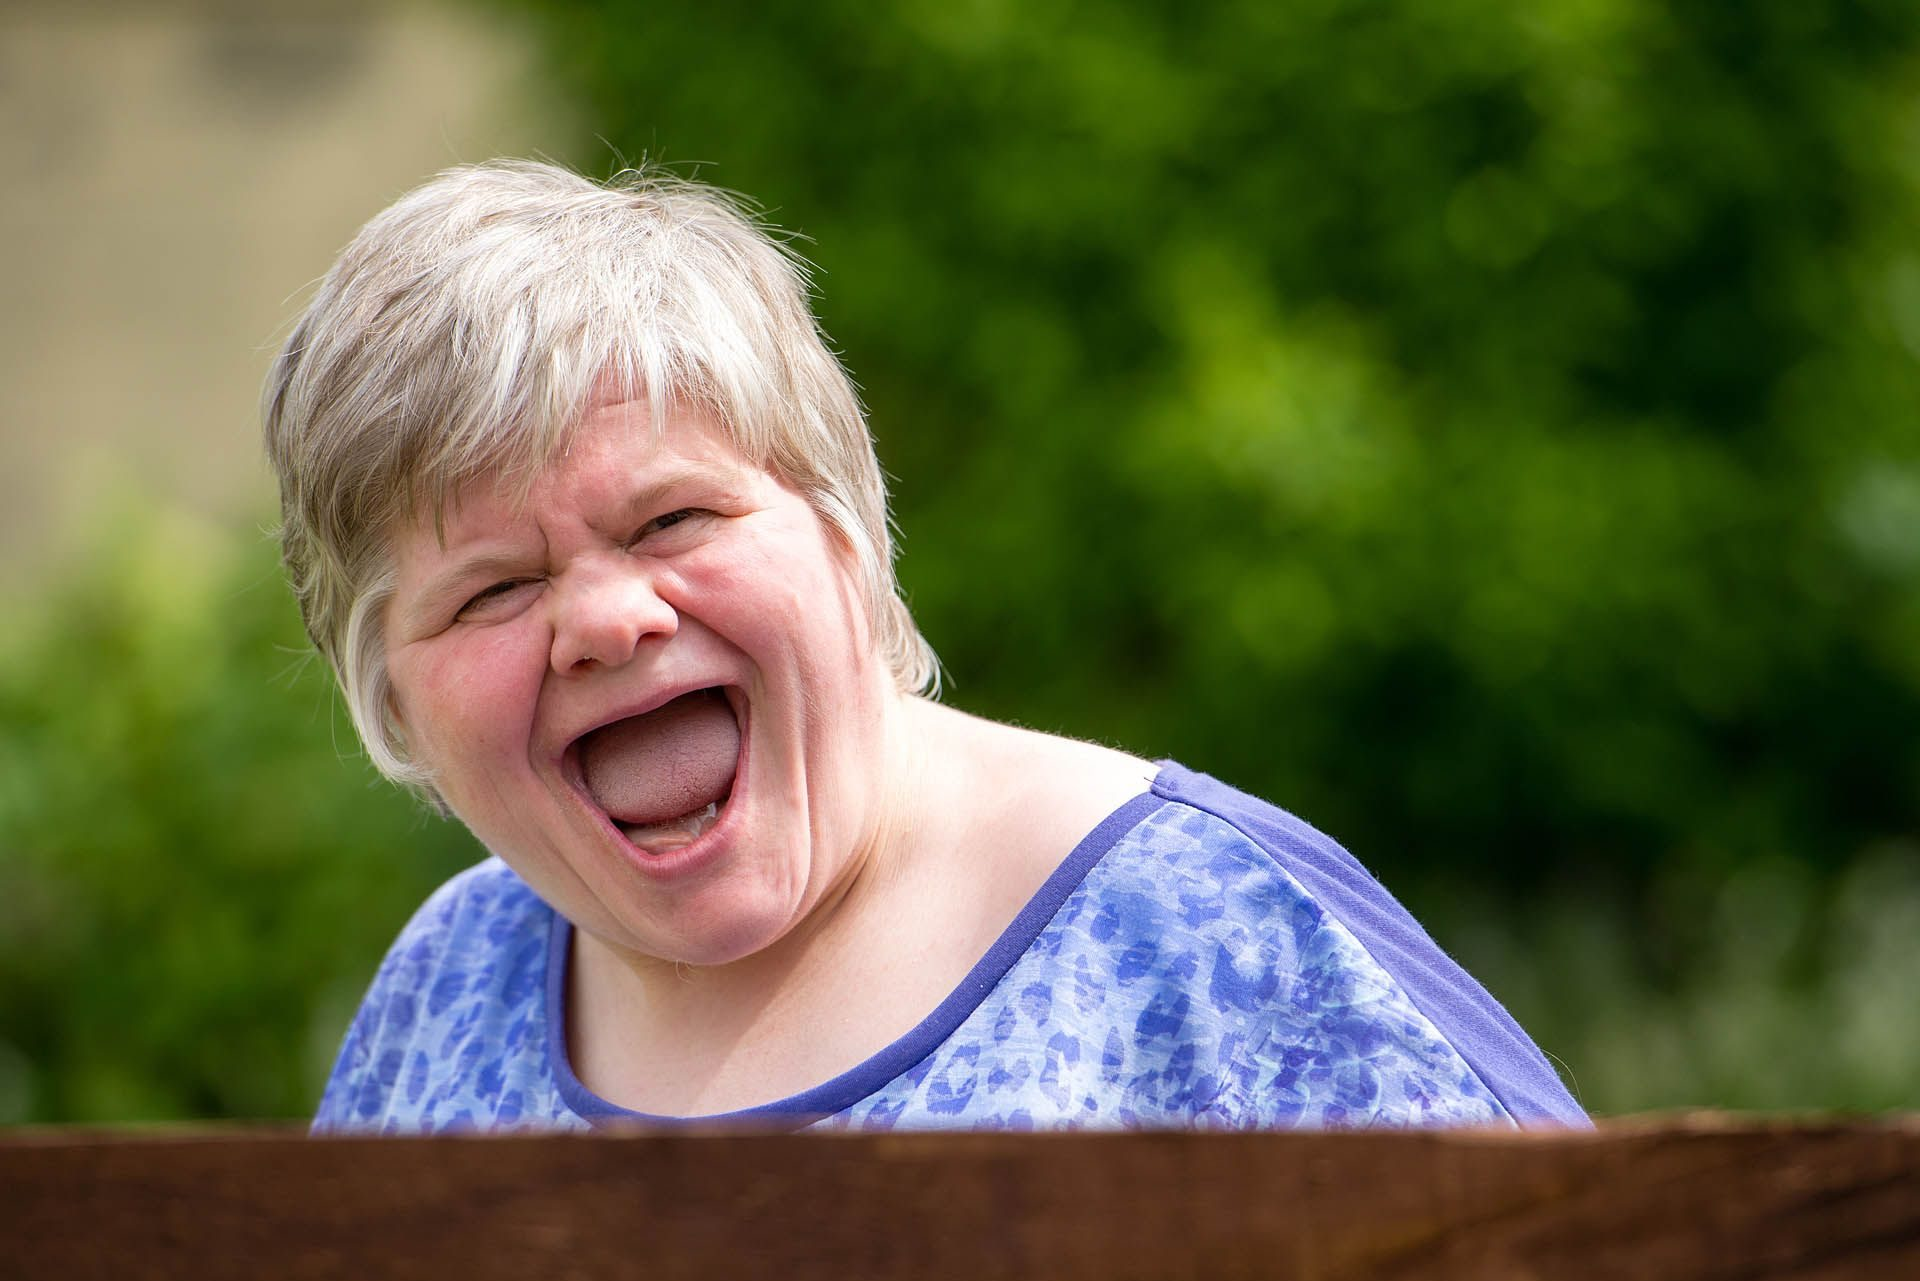 Woman with learning disabilities smiling at the camera